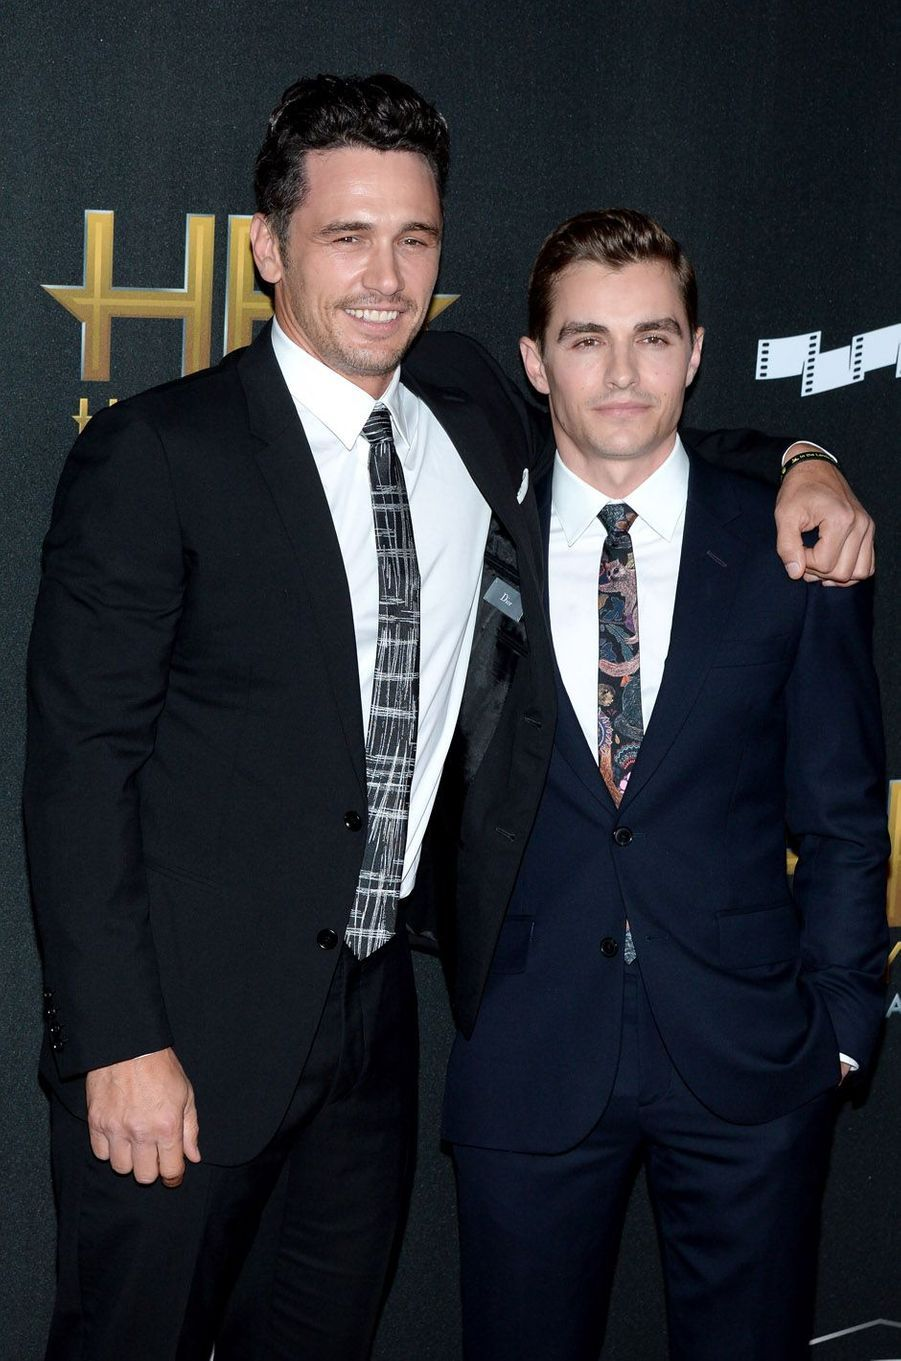 James et Dave Franco à la cérémonie des Hollywood Film Awards à Beverly Hills, le 5 novembre 2017.